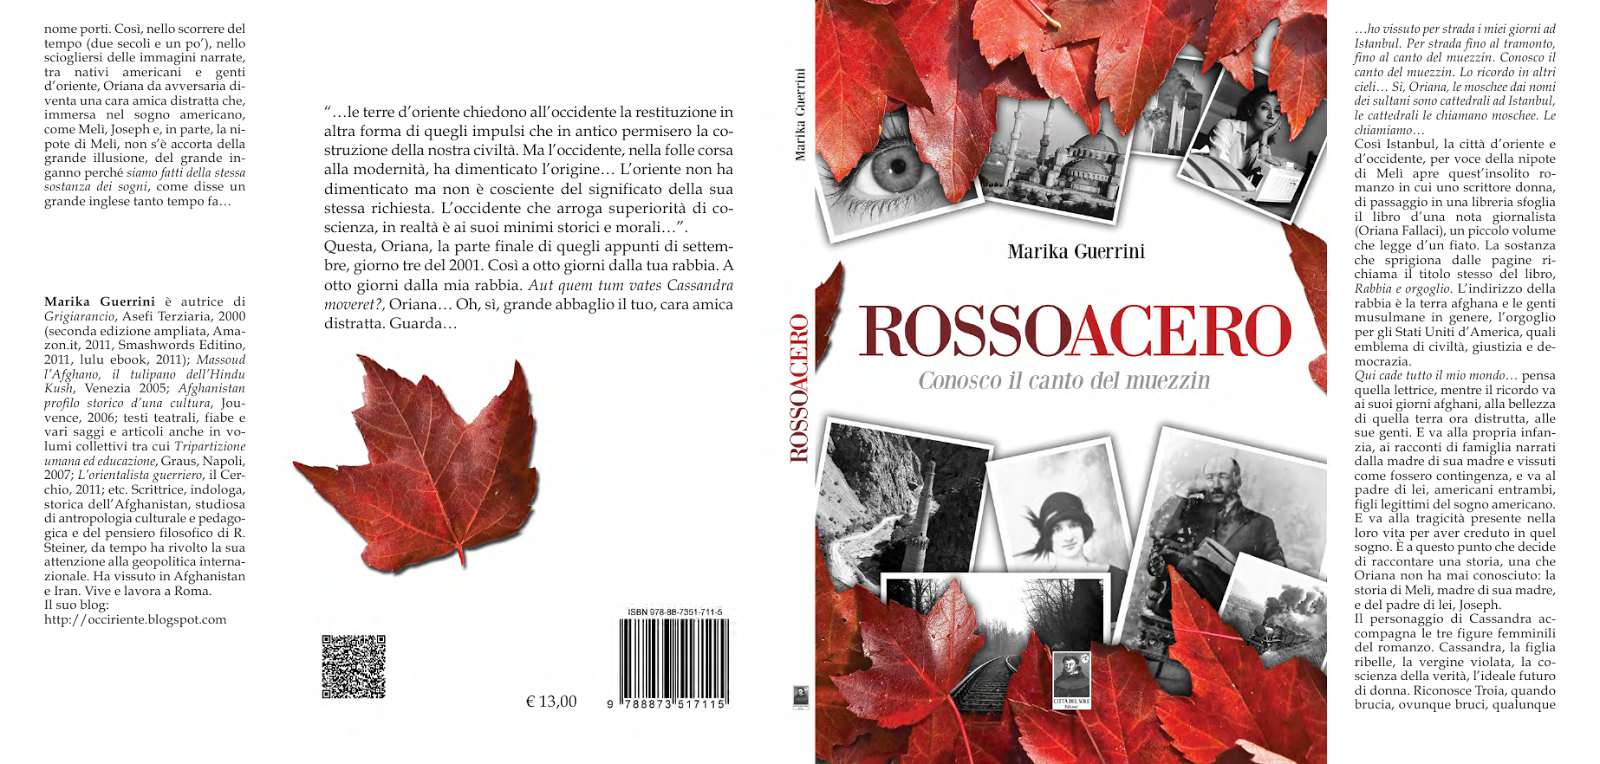 """ROSSOACERO. Conosco. il canto... di Marika Guerrini-Recensioni / Le Monde Diplomatique ed altri..."